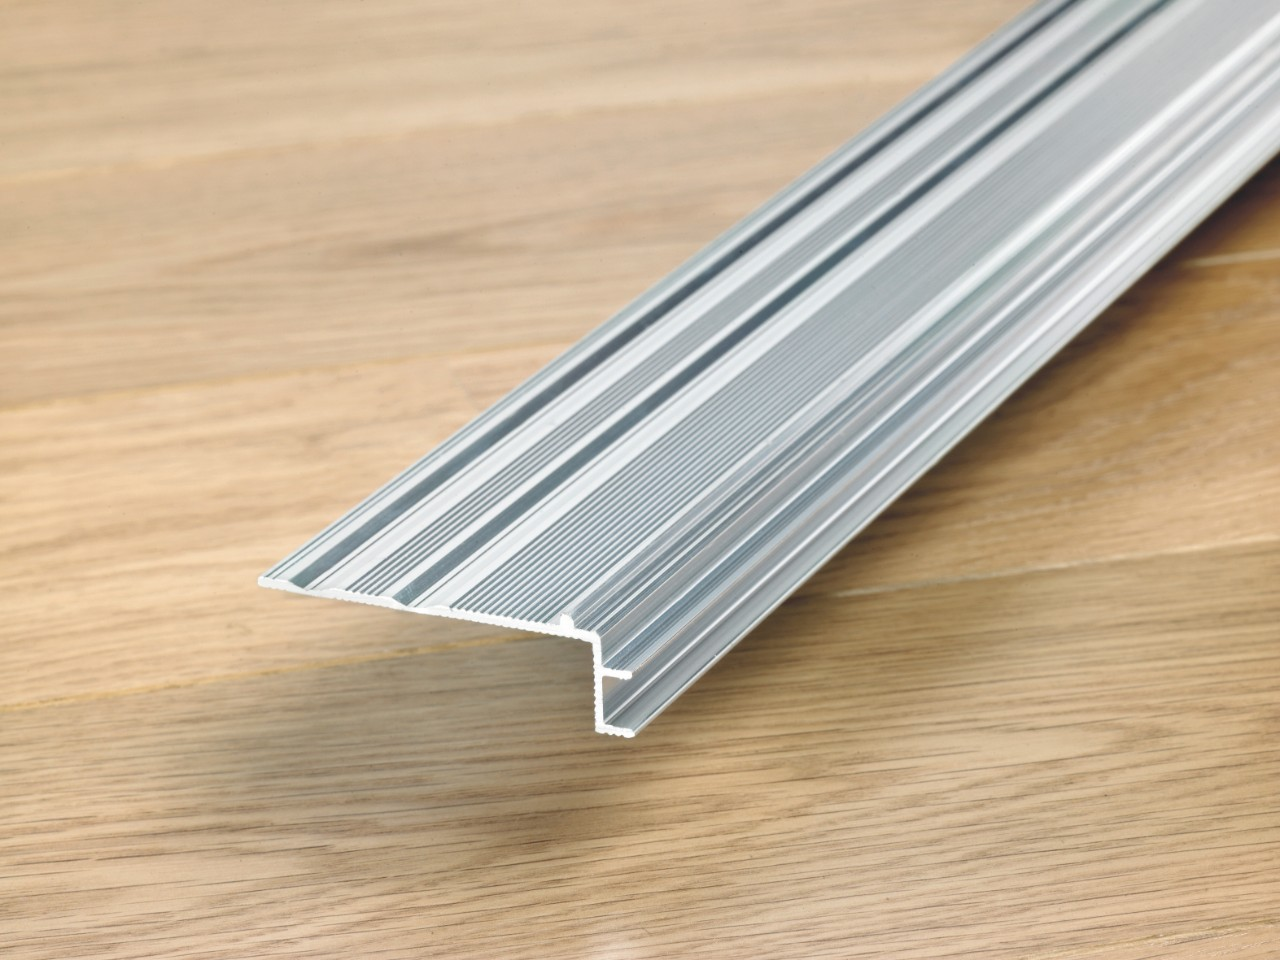 NEINCPBASE Laminate Accessories Incizo Aluminium Subprofile For Stairs NEINCPBASE2